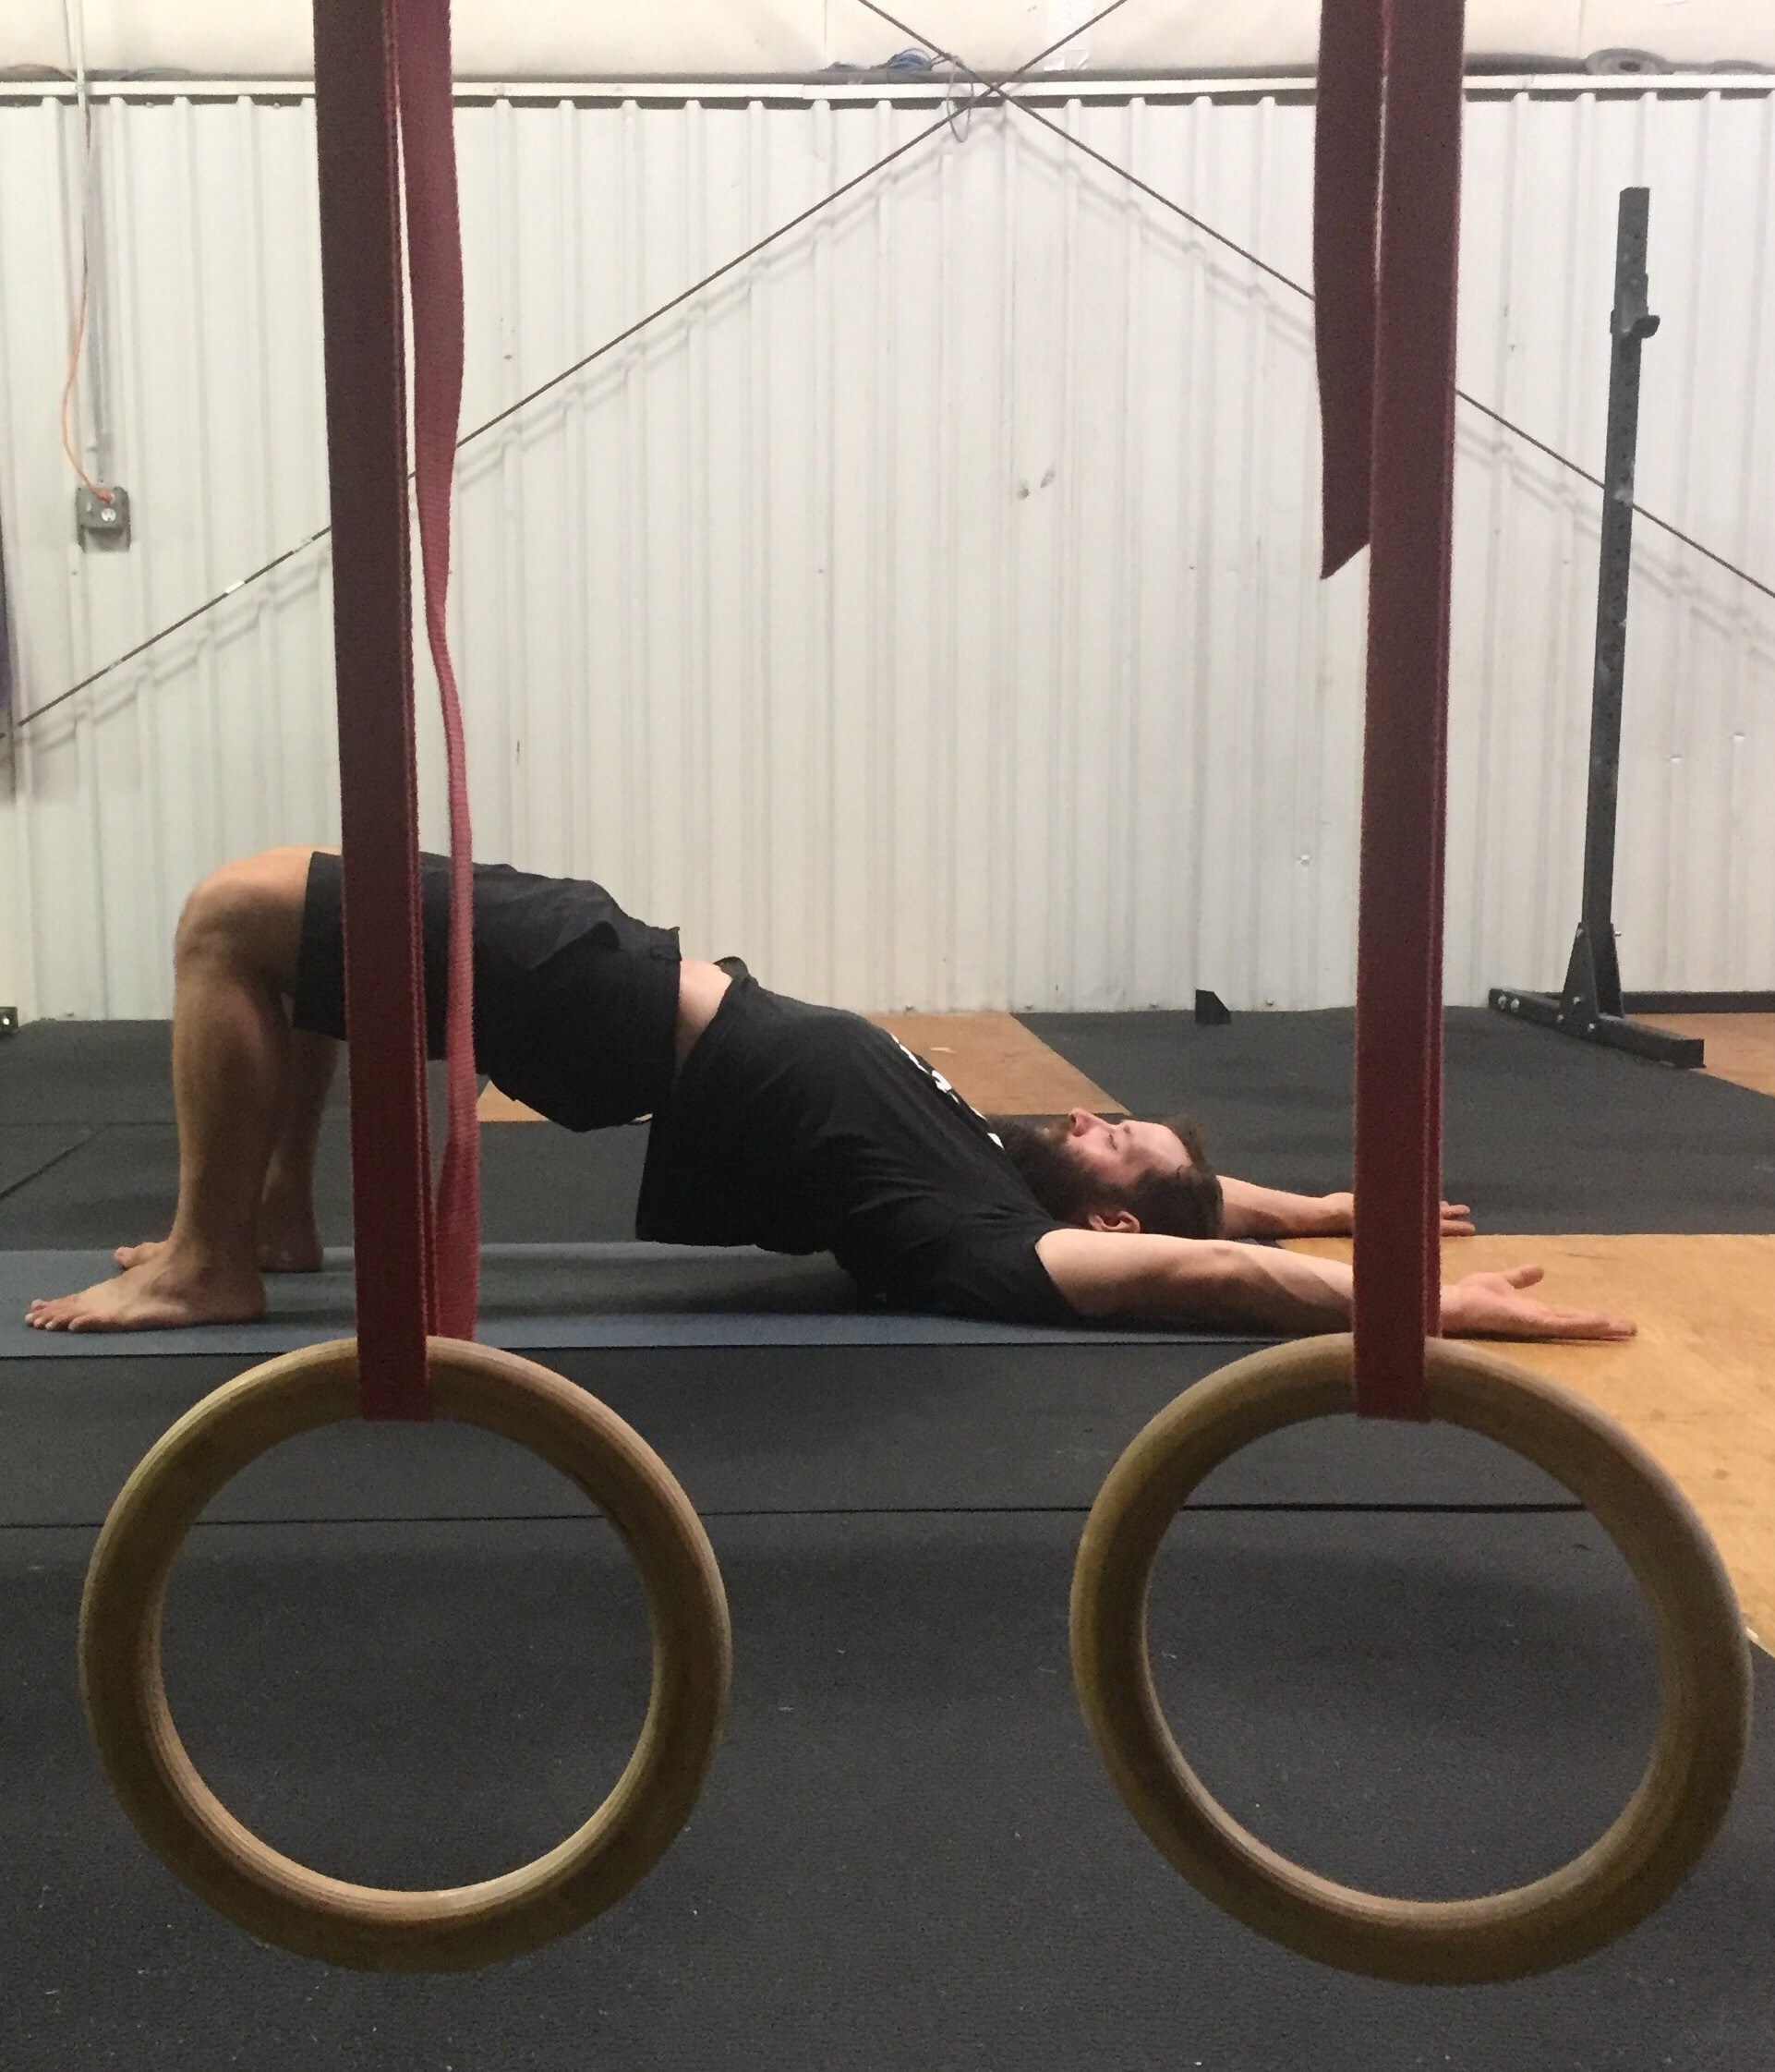 Iso-bridge to help engage the muscles in the posterior chain.